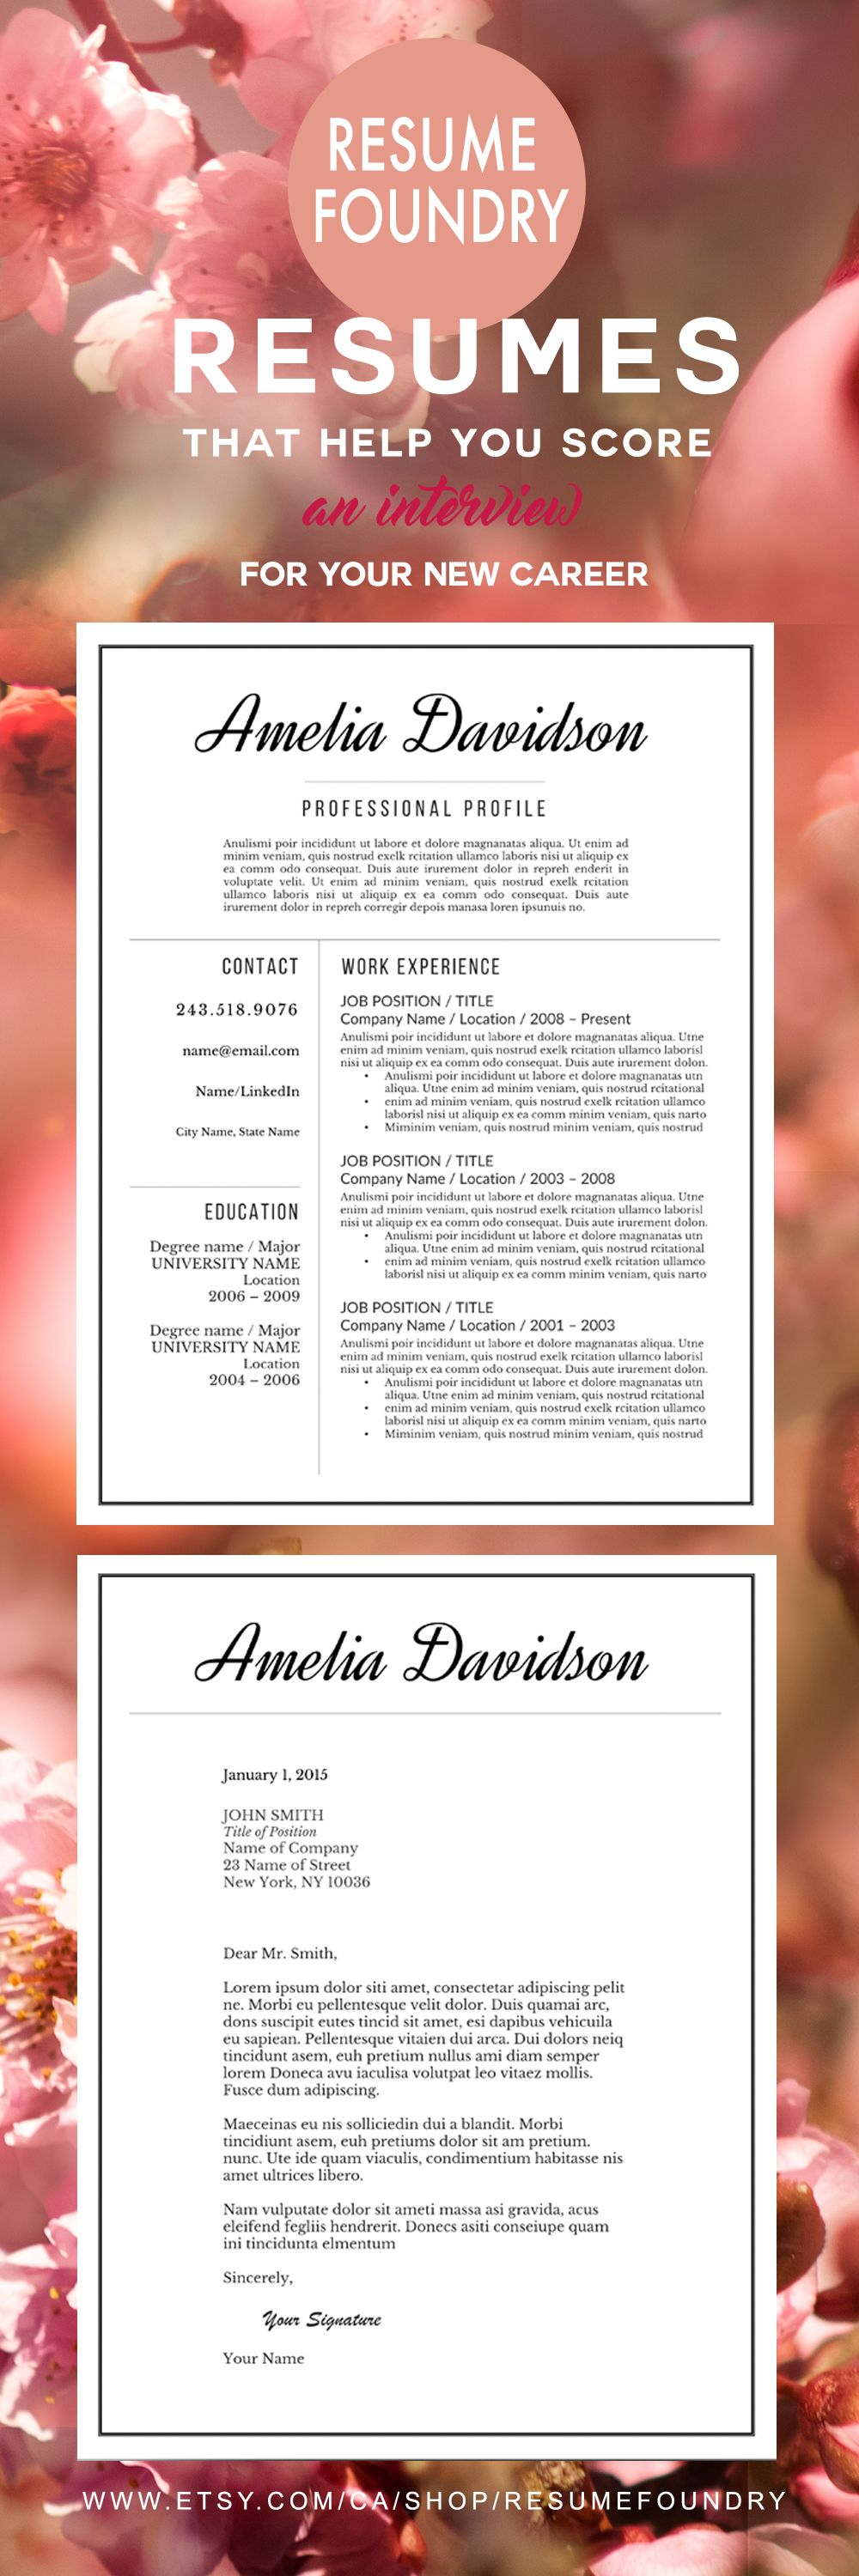 beautiful resume template from resume foundry - Nice Resume Template